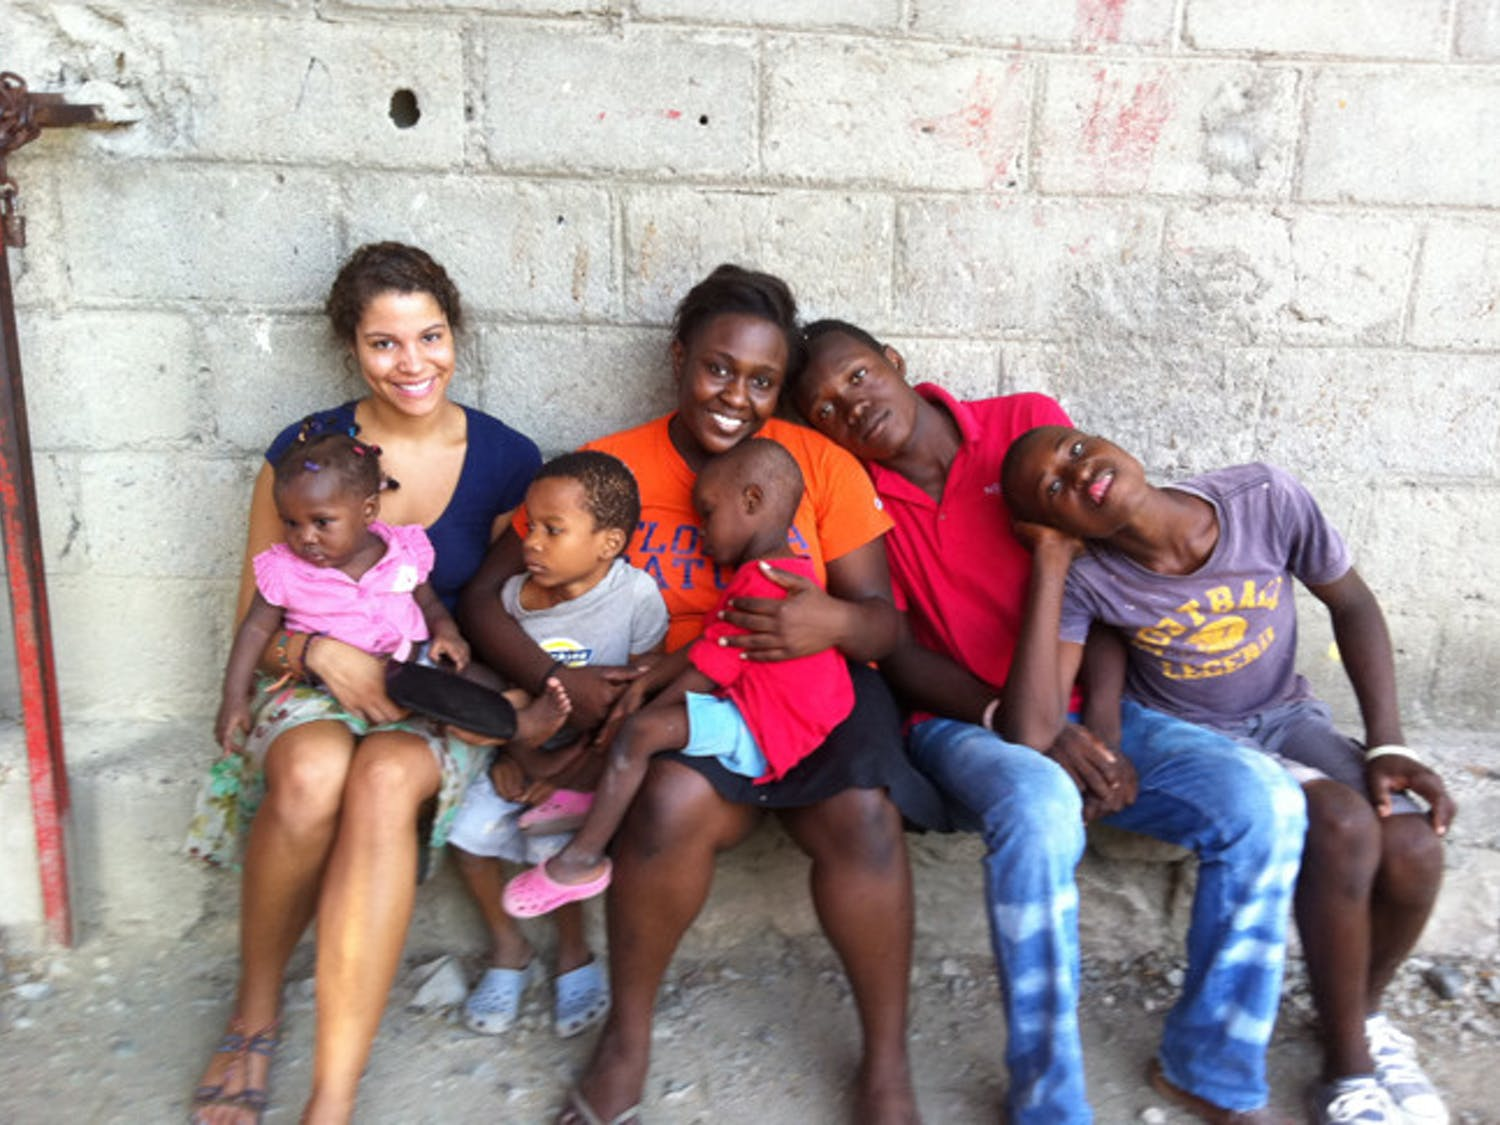 McNair Scholars Jasmine Wright and Bertrhude Albert pose with orphans at the H.O.P.E. Center in Haiti.